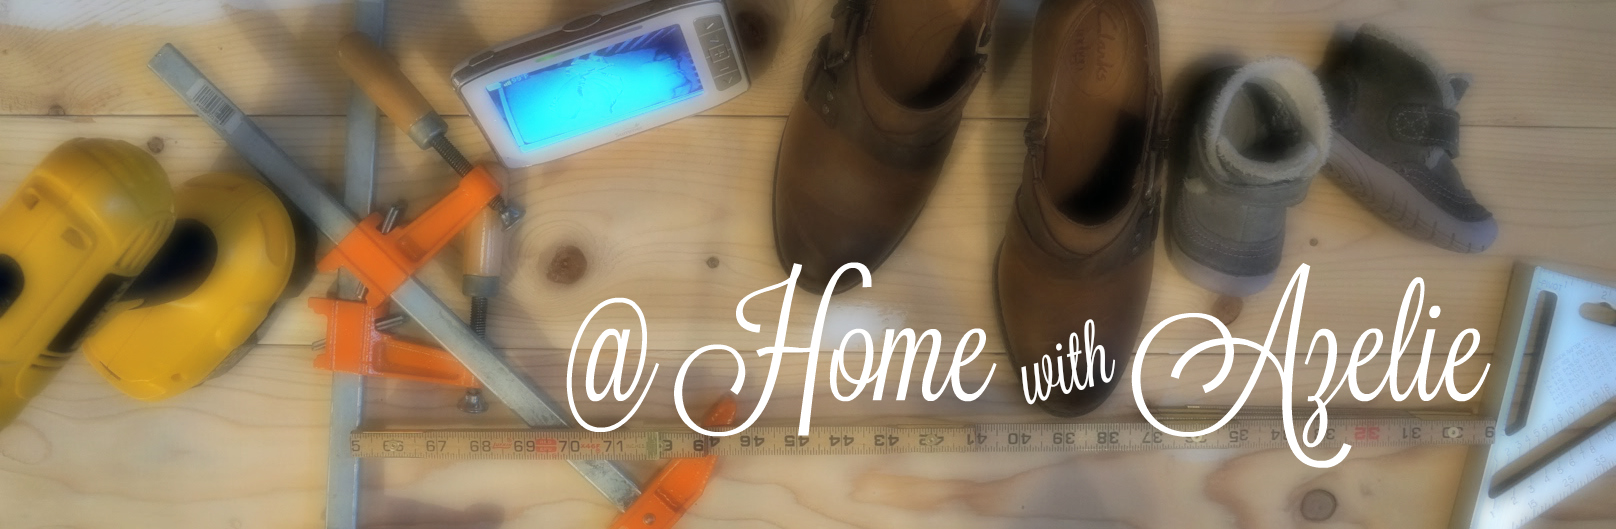 at home with azelie header image